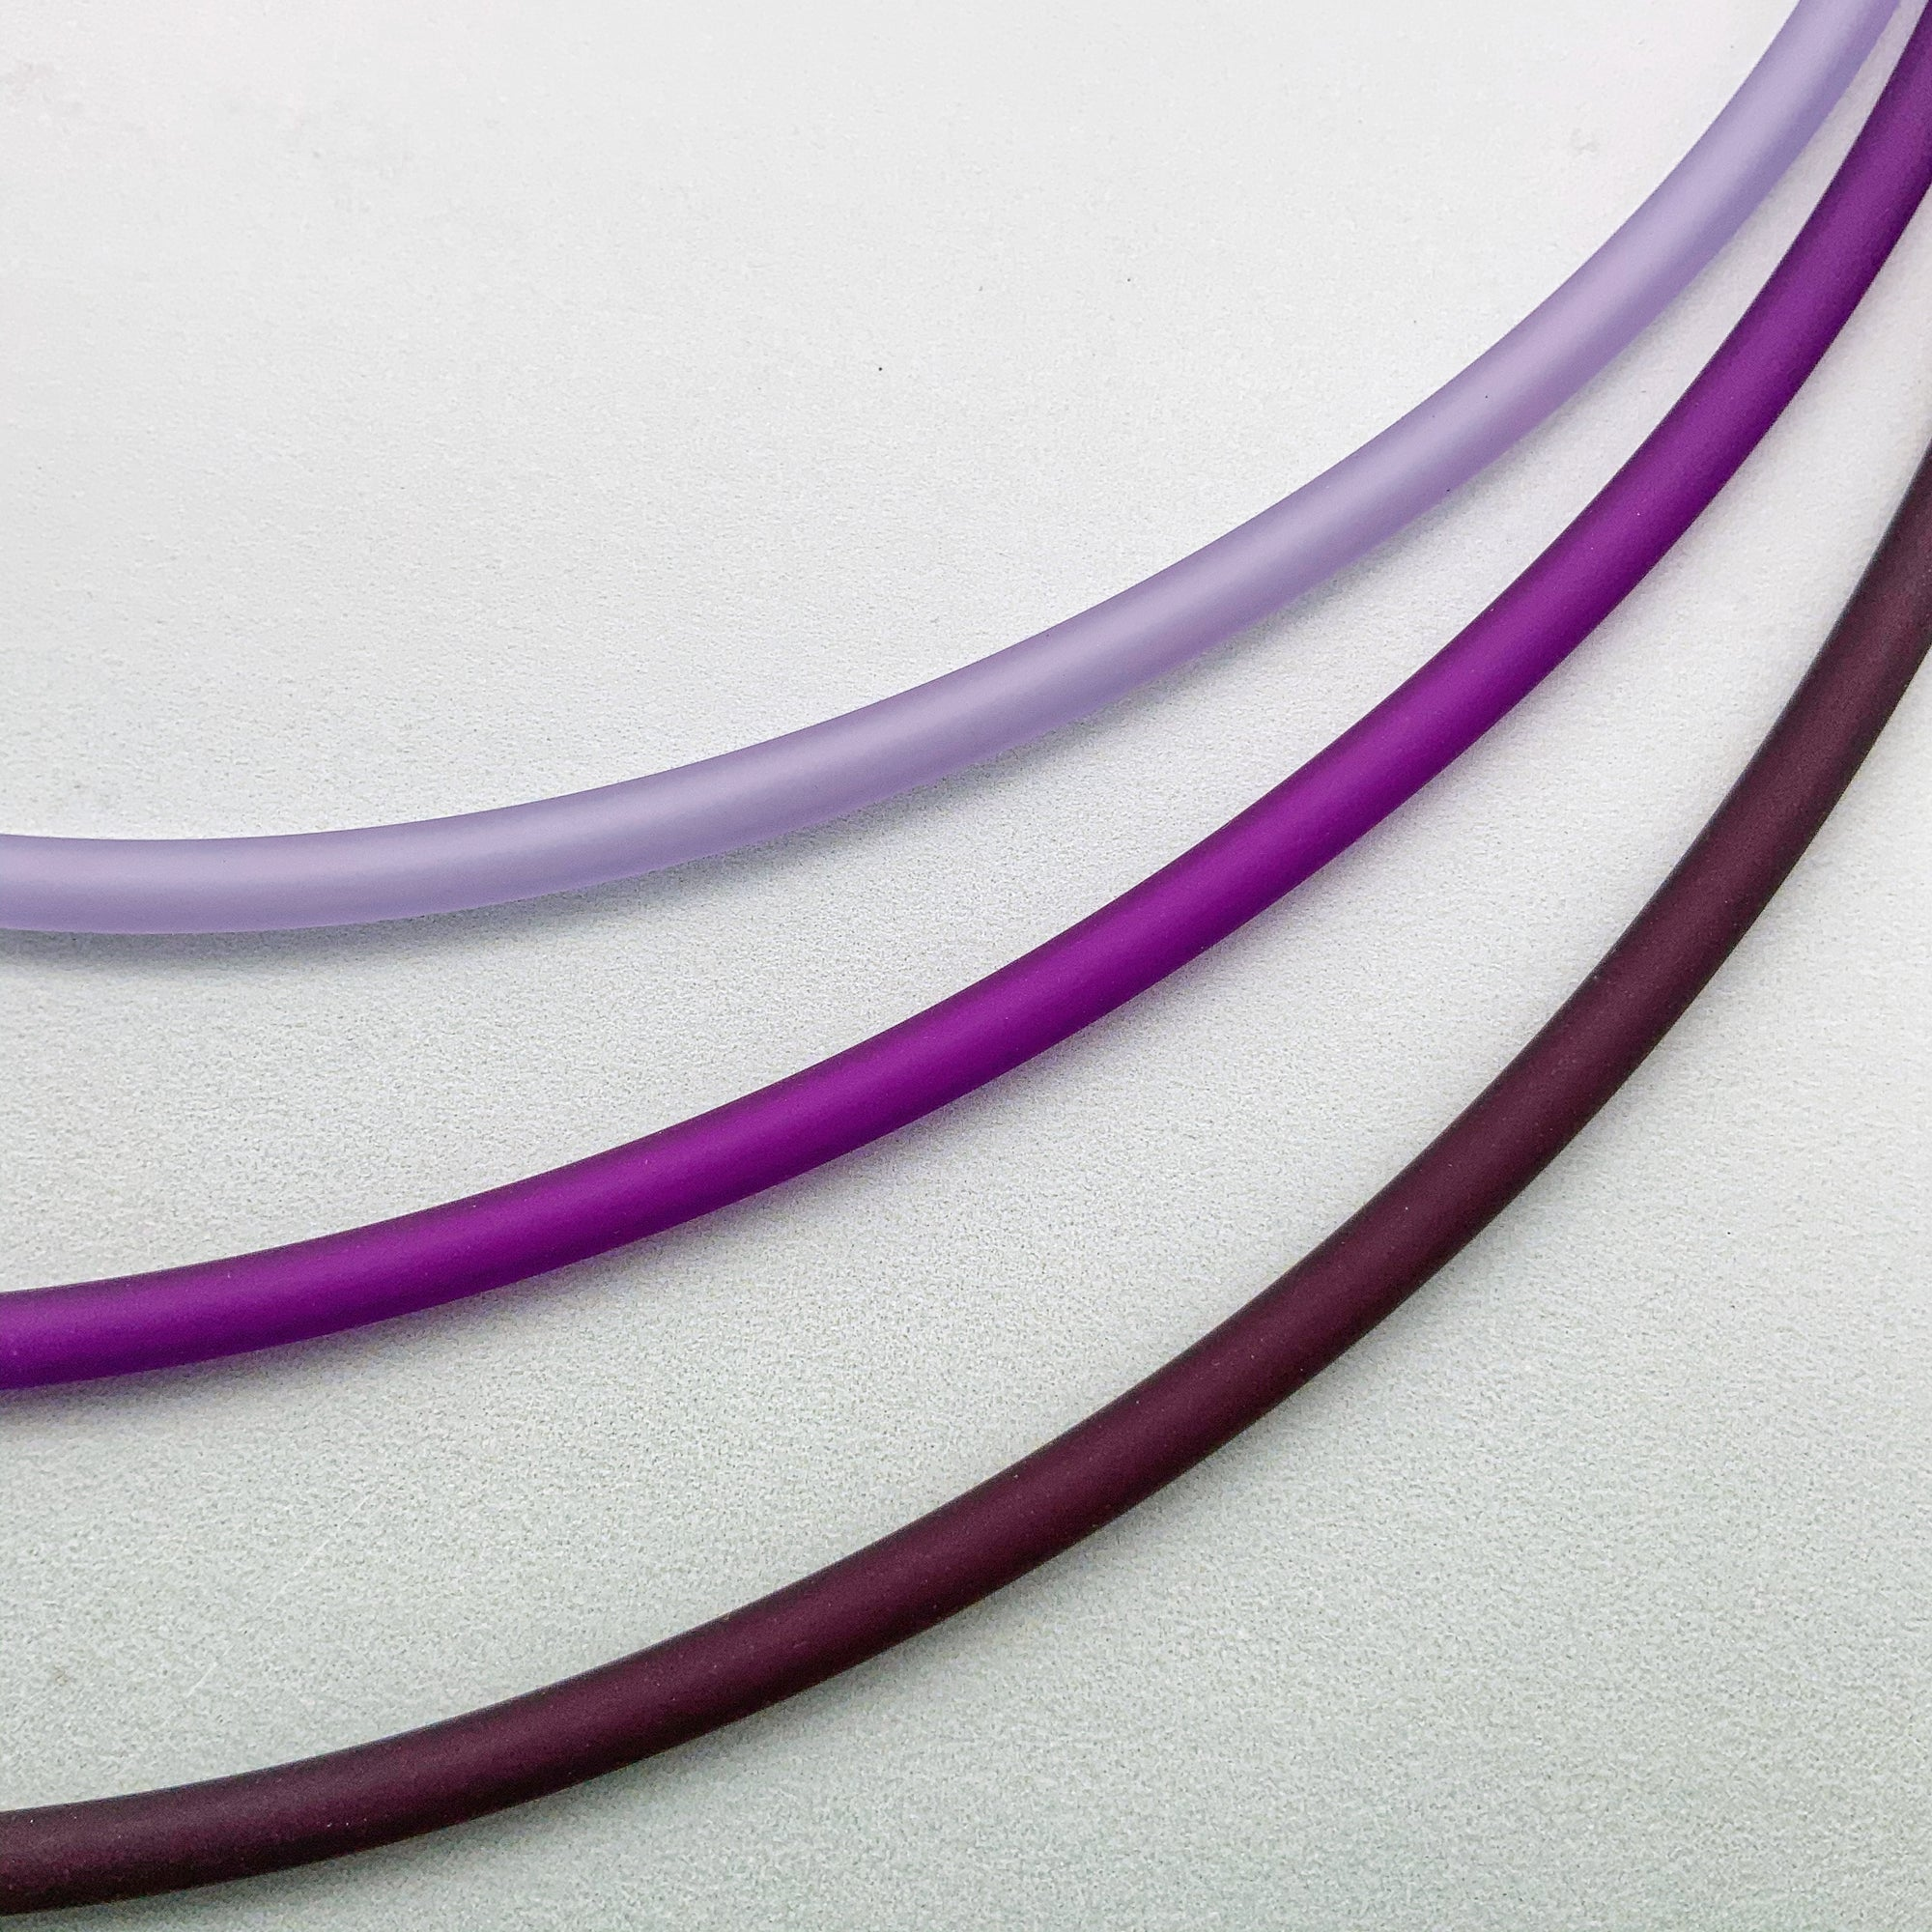 4mm PVC necklaces in lilac, violet and plum